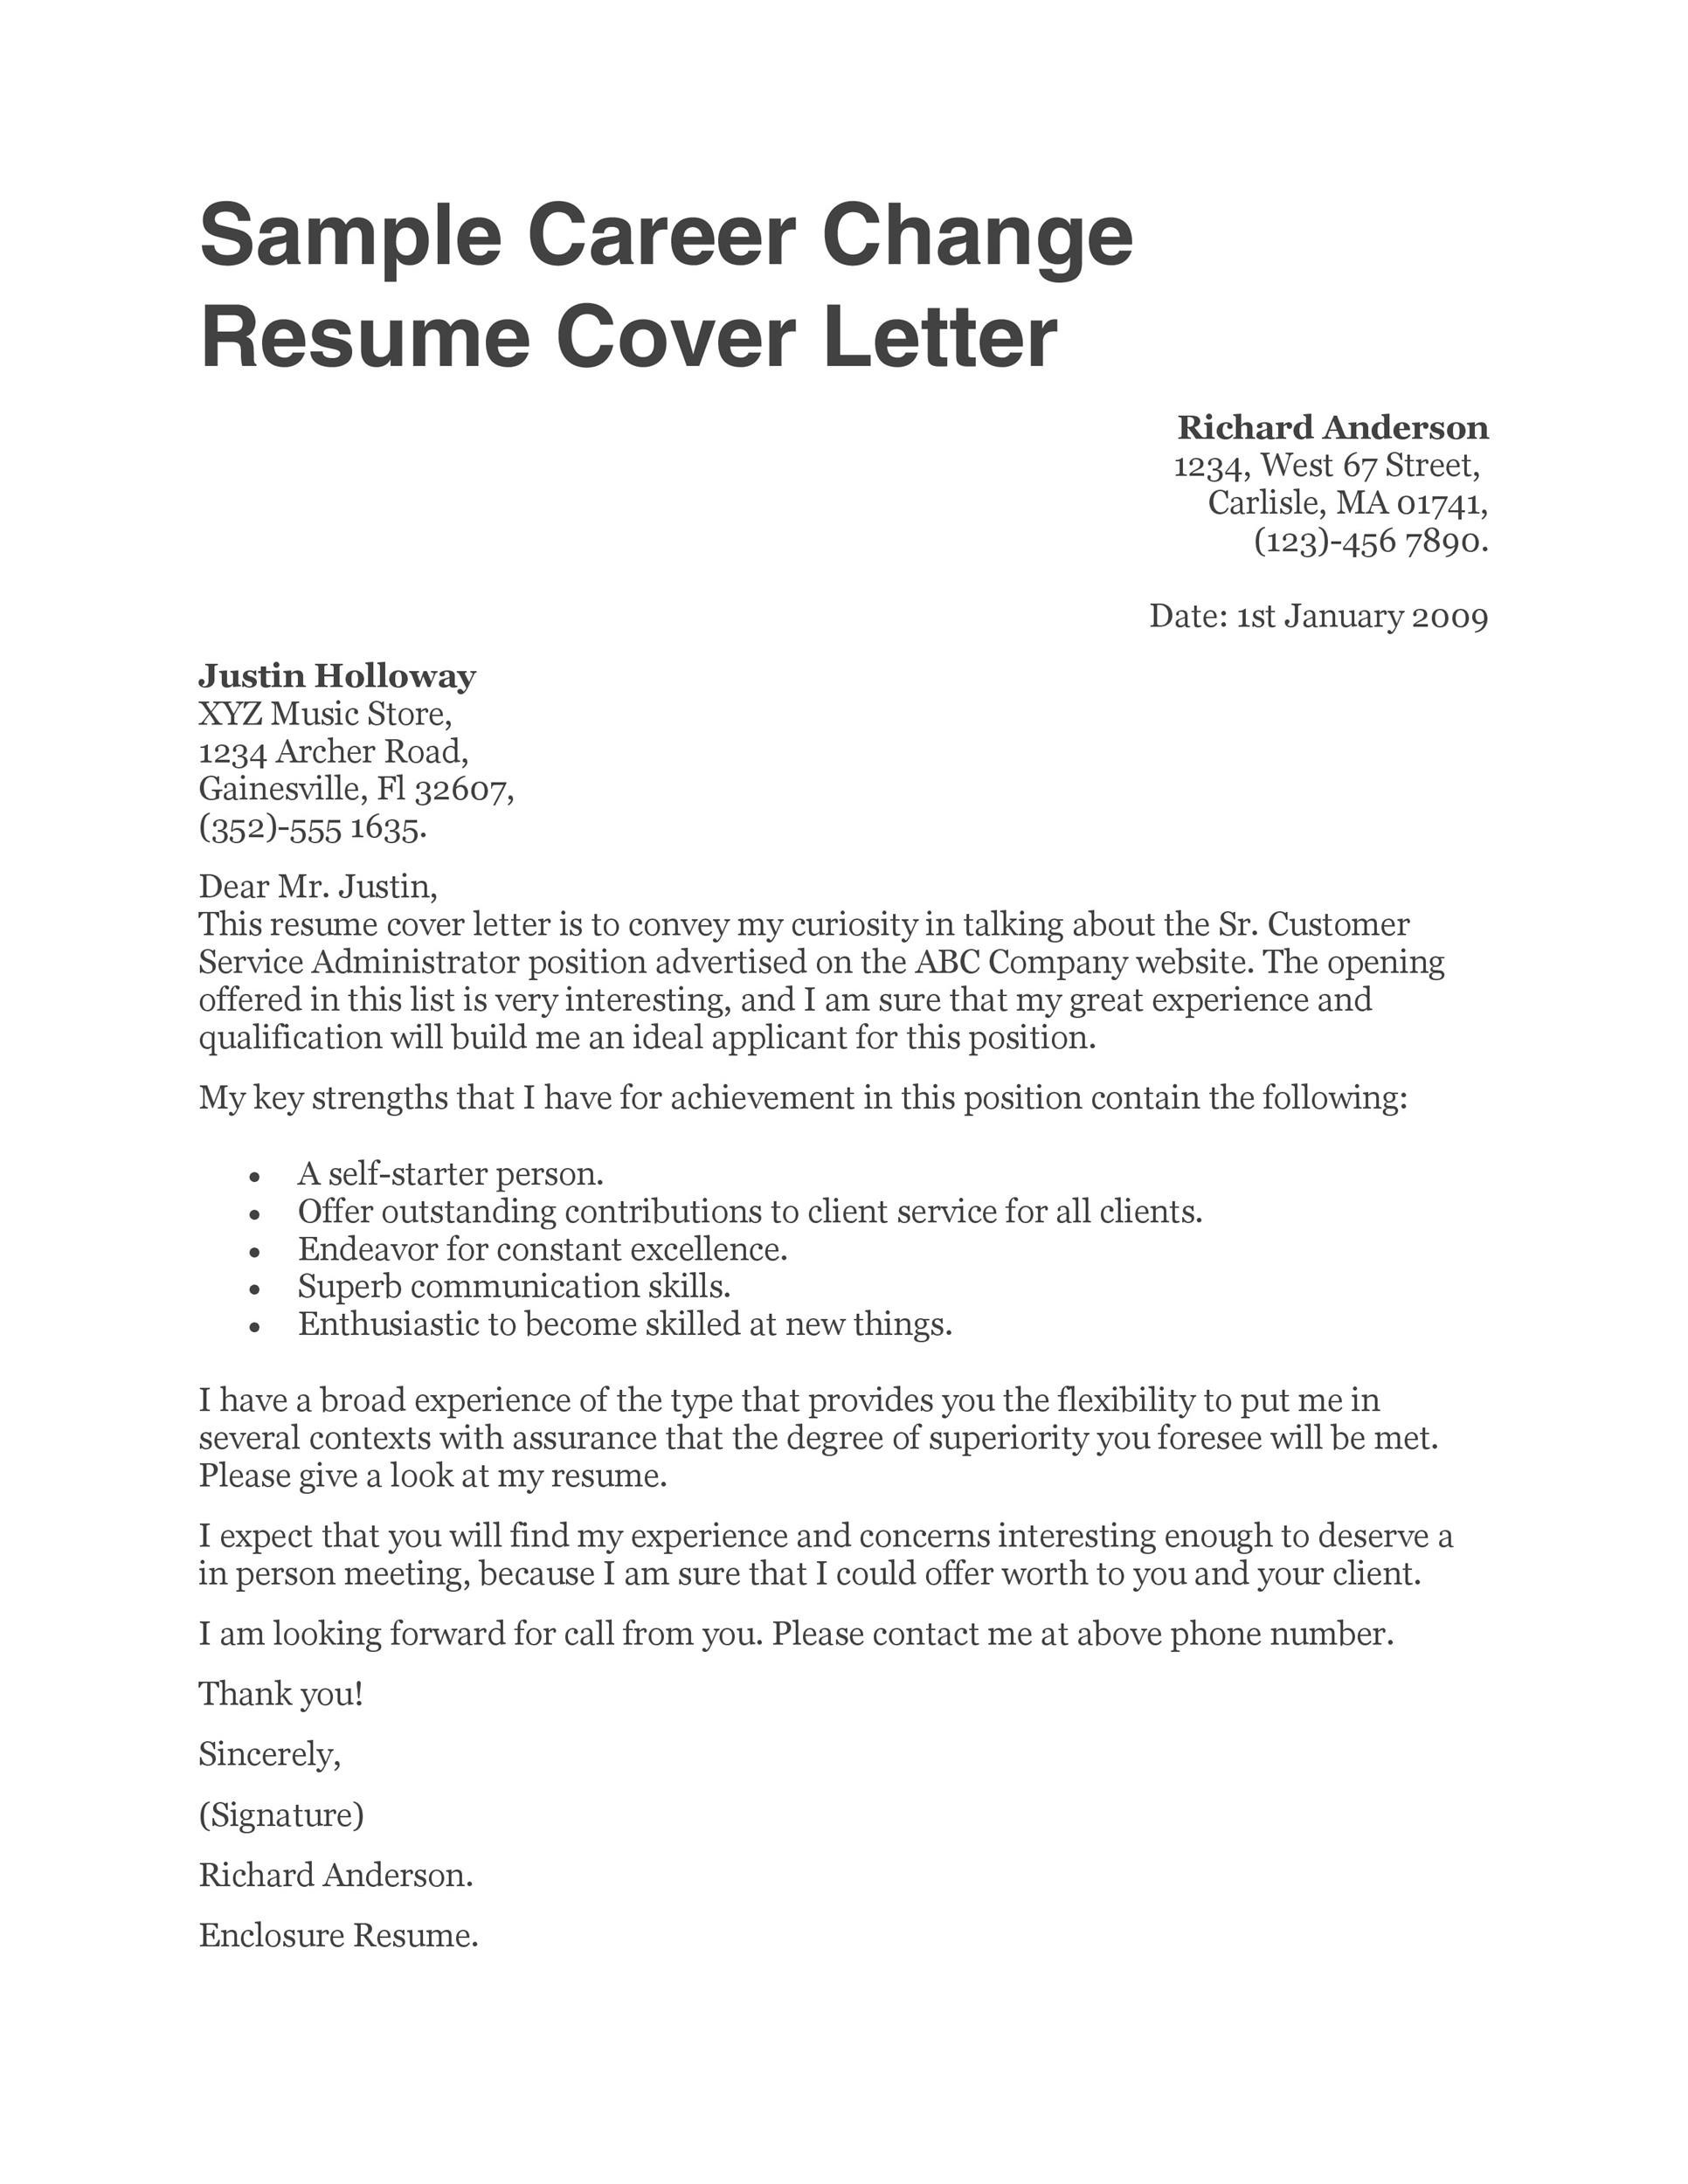 Free career change cover letter 18